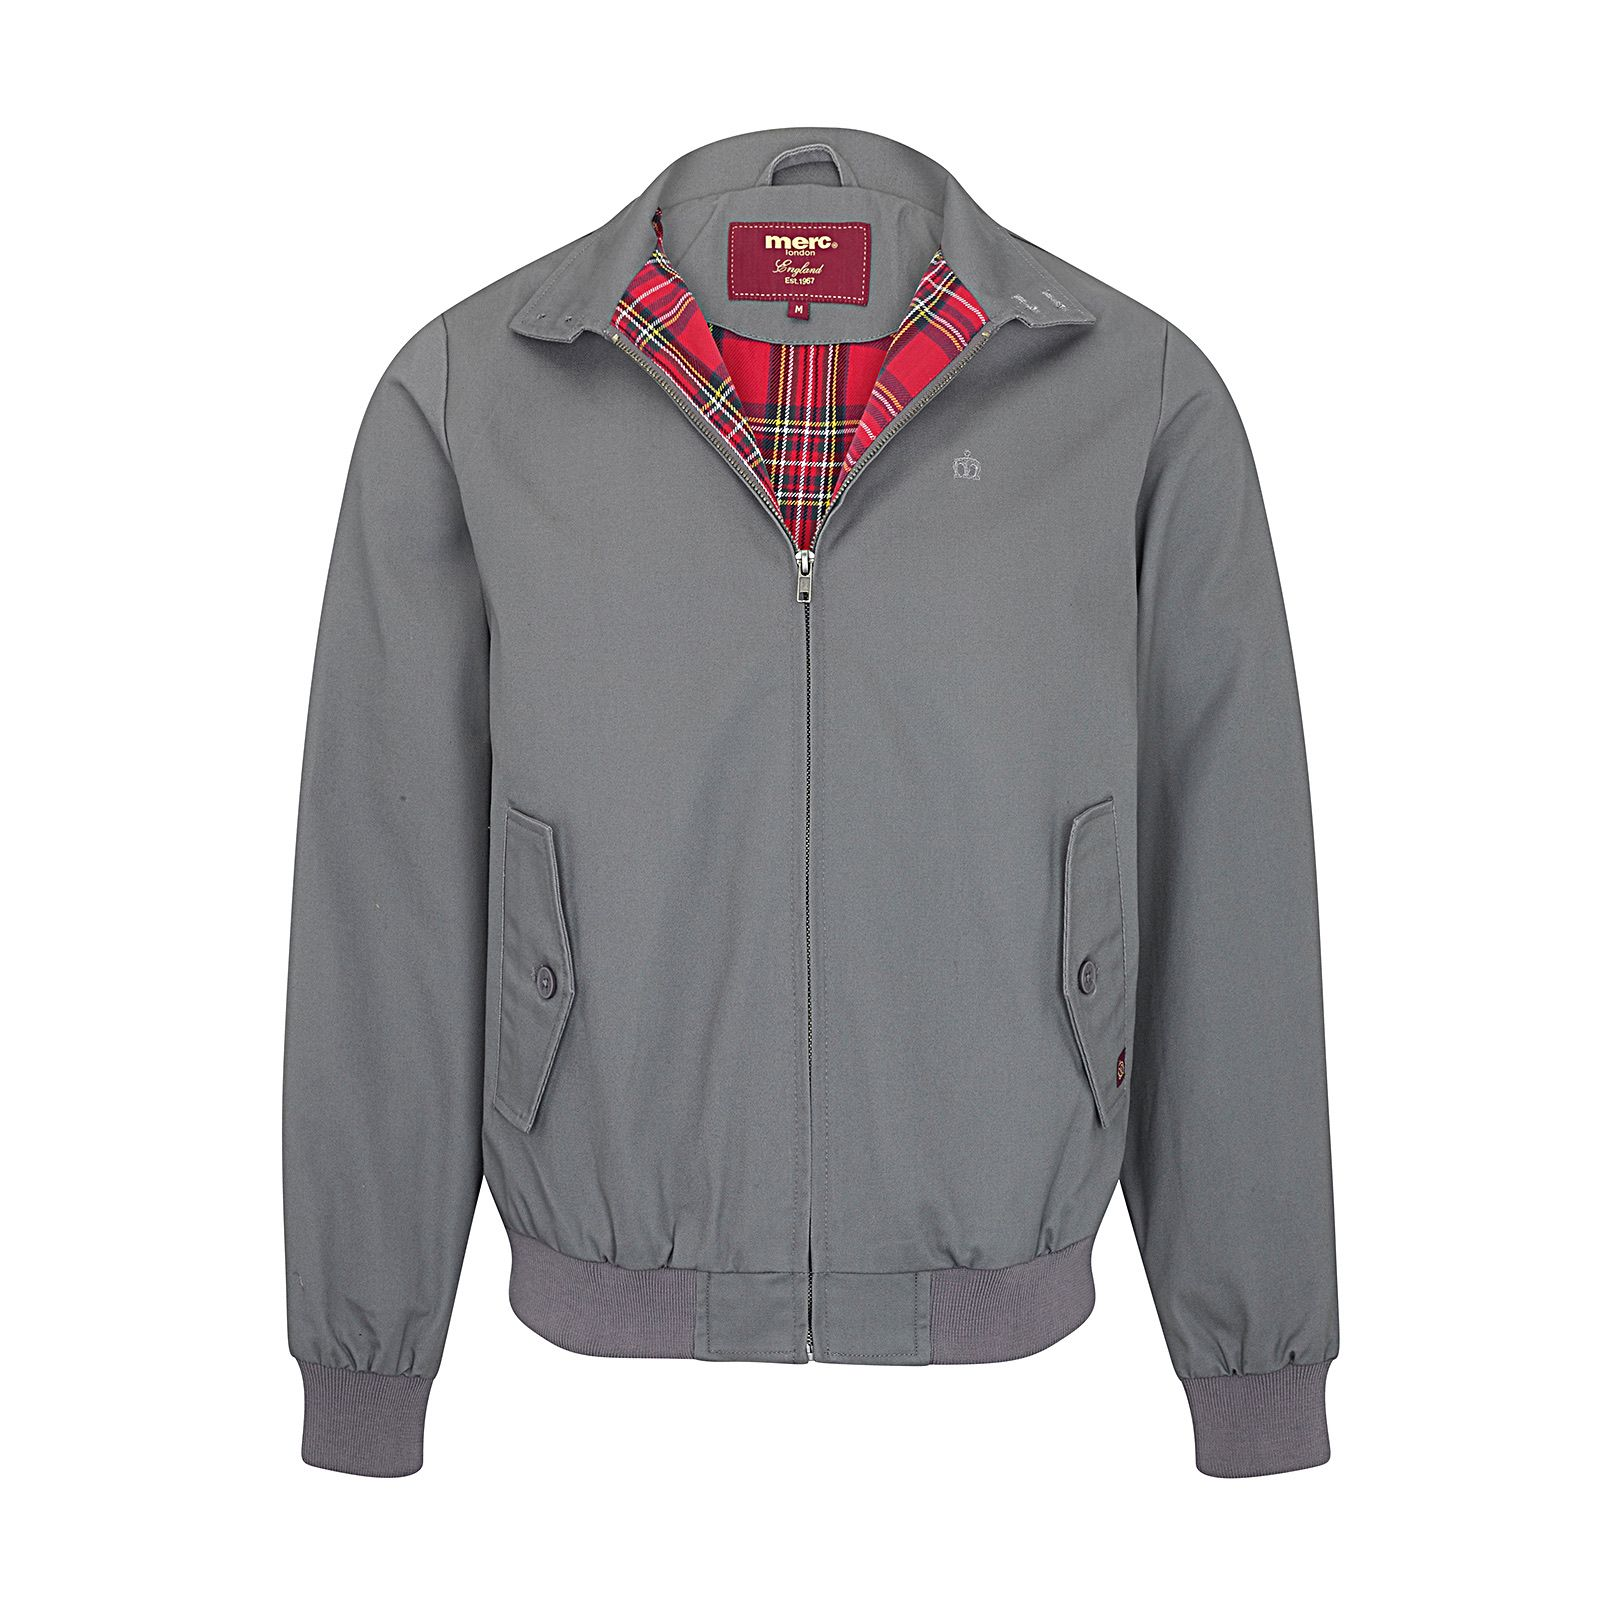 Merc Harrington Jacket in Dark Grey